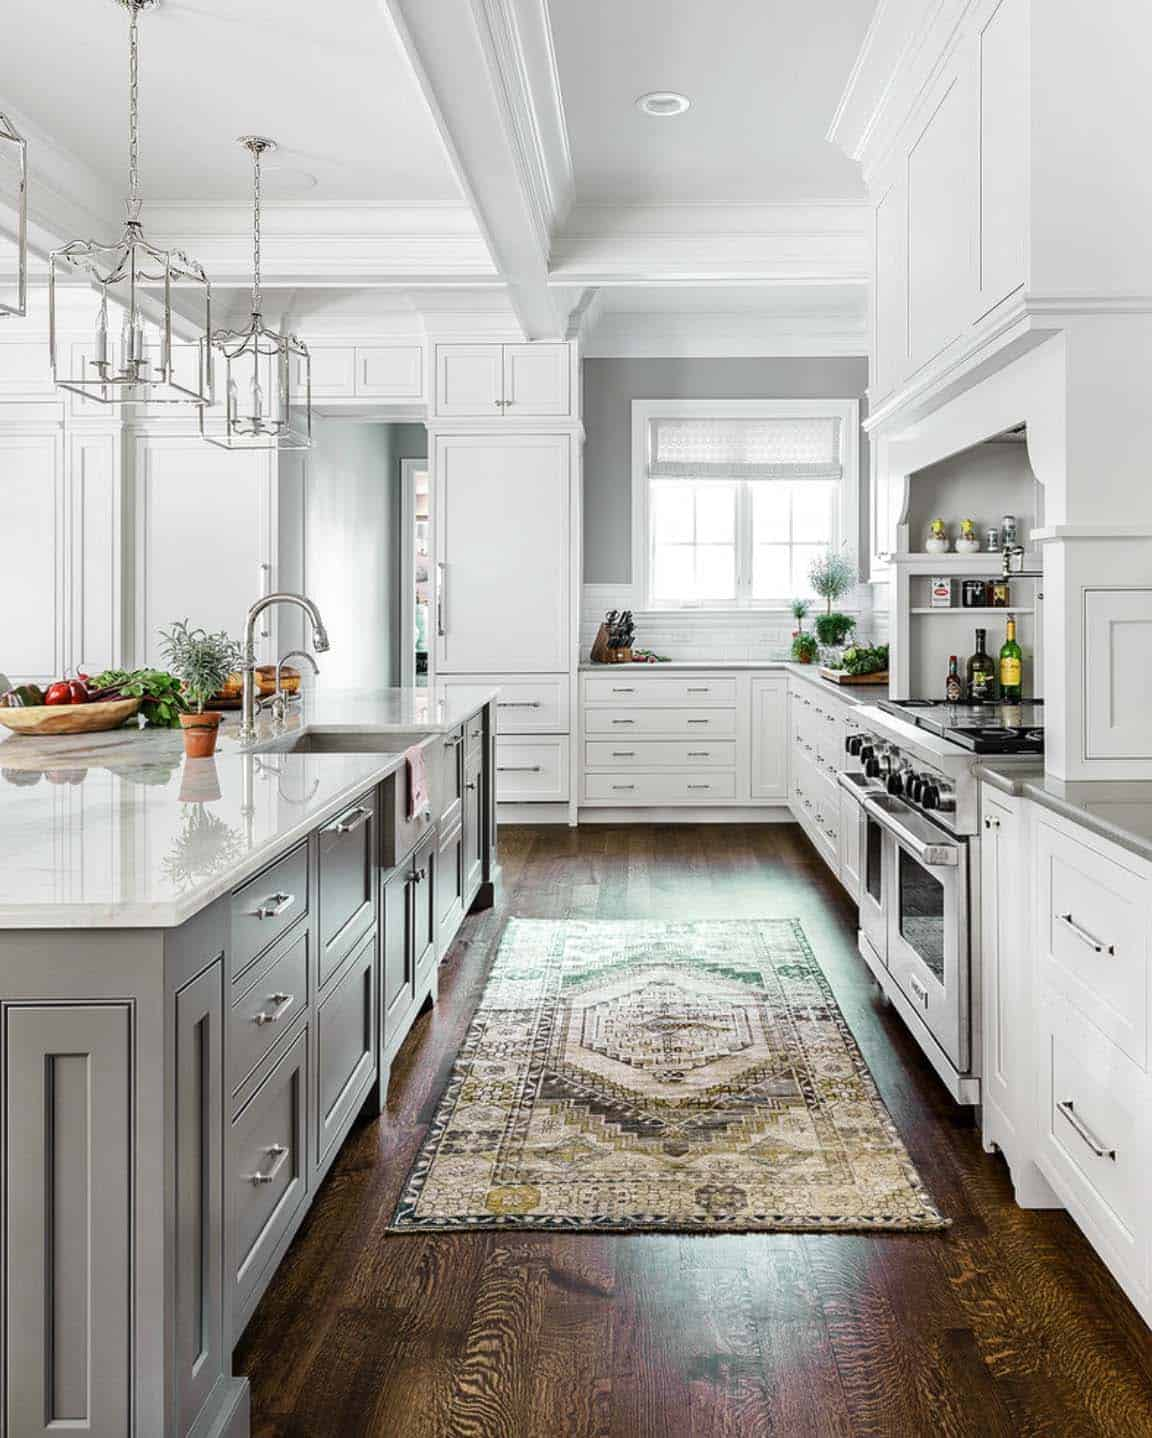 White Kitchen: 30+ Beautiful And Inspiring Light-filled Kitchens With